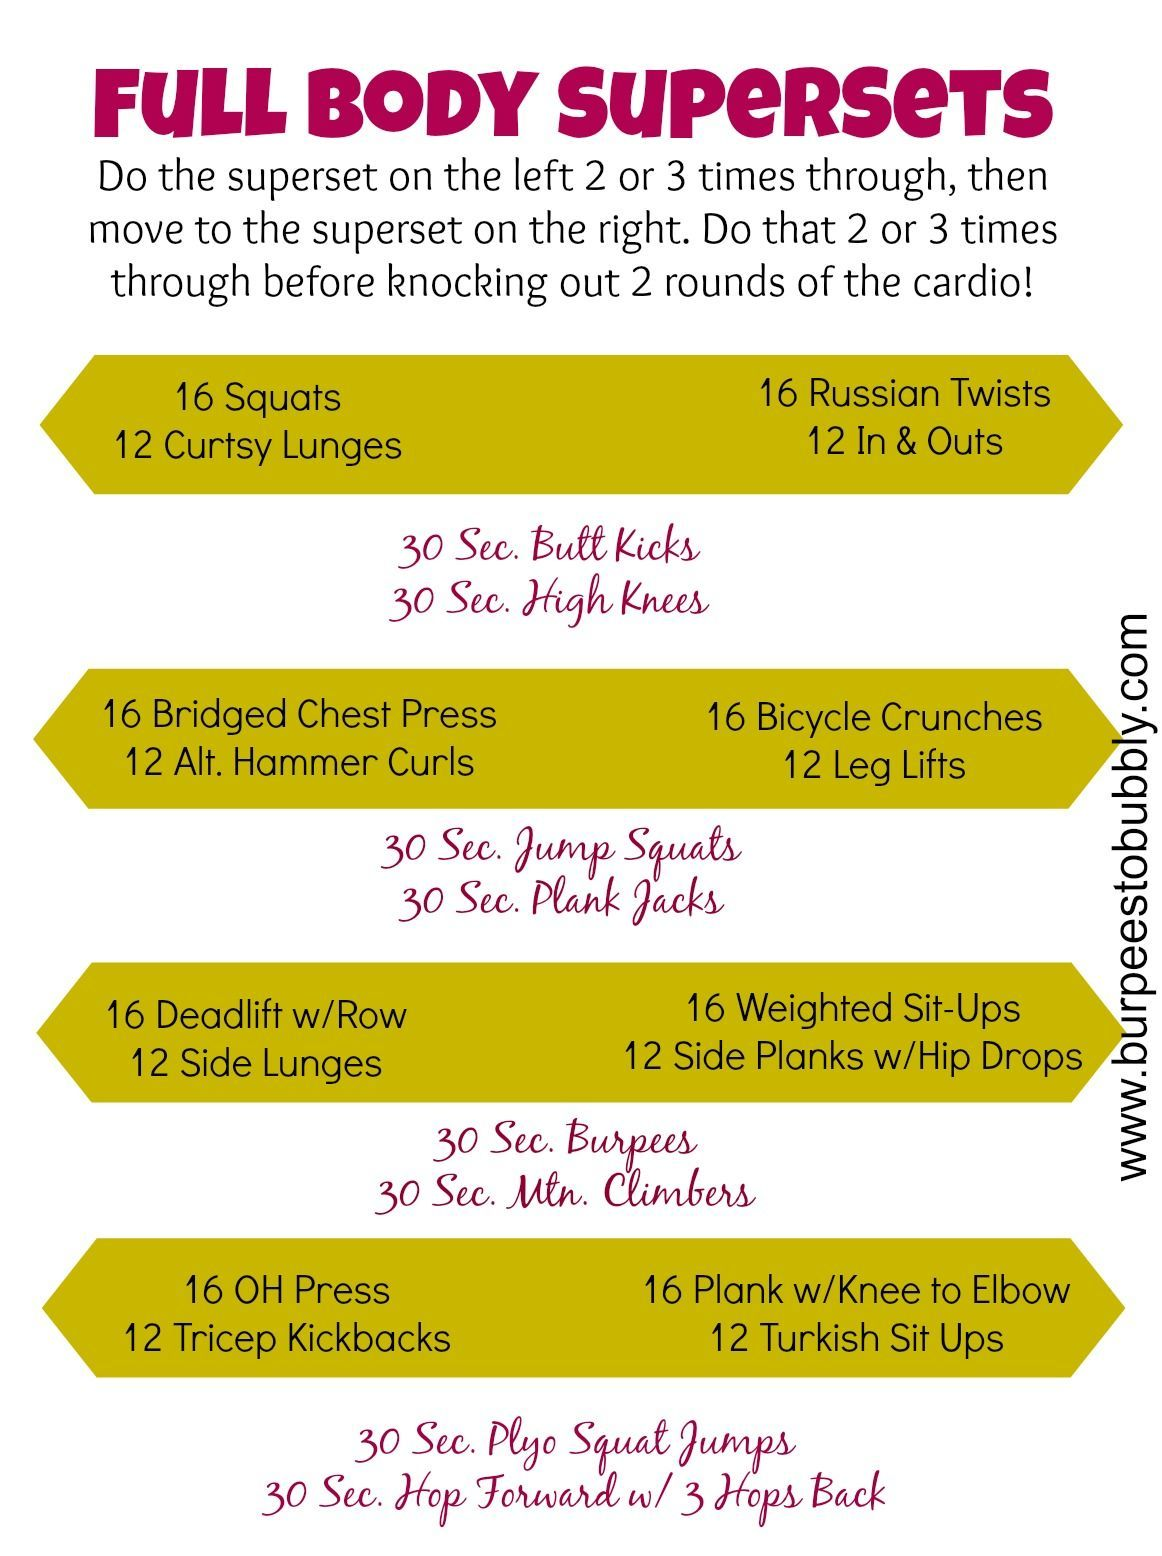 Wednesday Workout Full Body Supersets Fitness Pinterest Superset Circuit Leg Up On